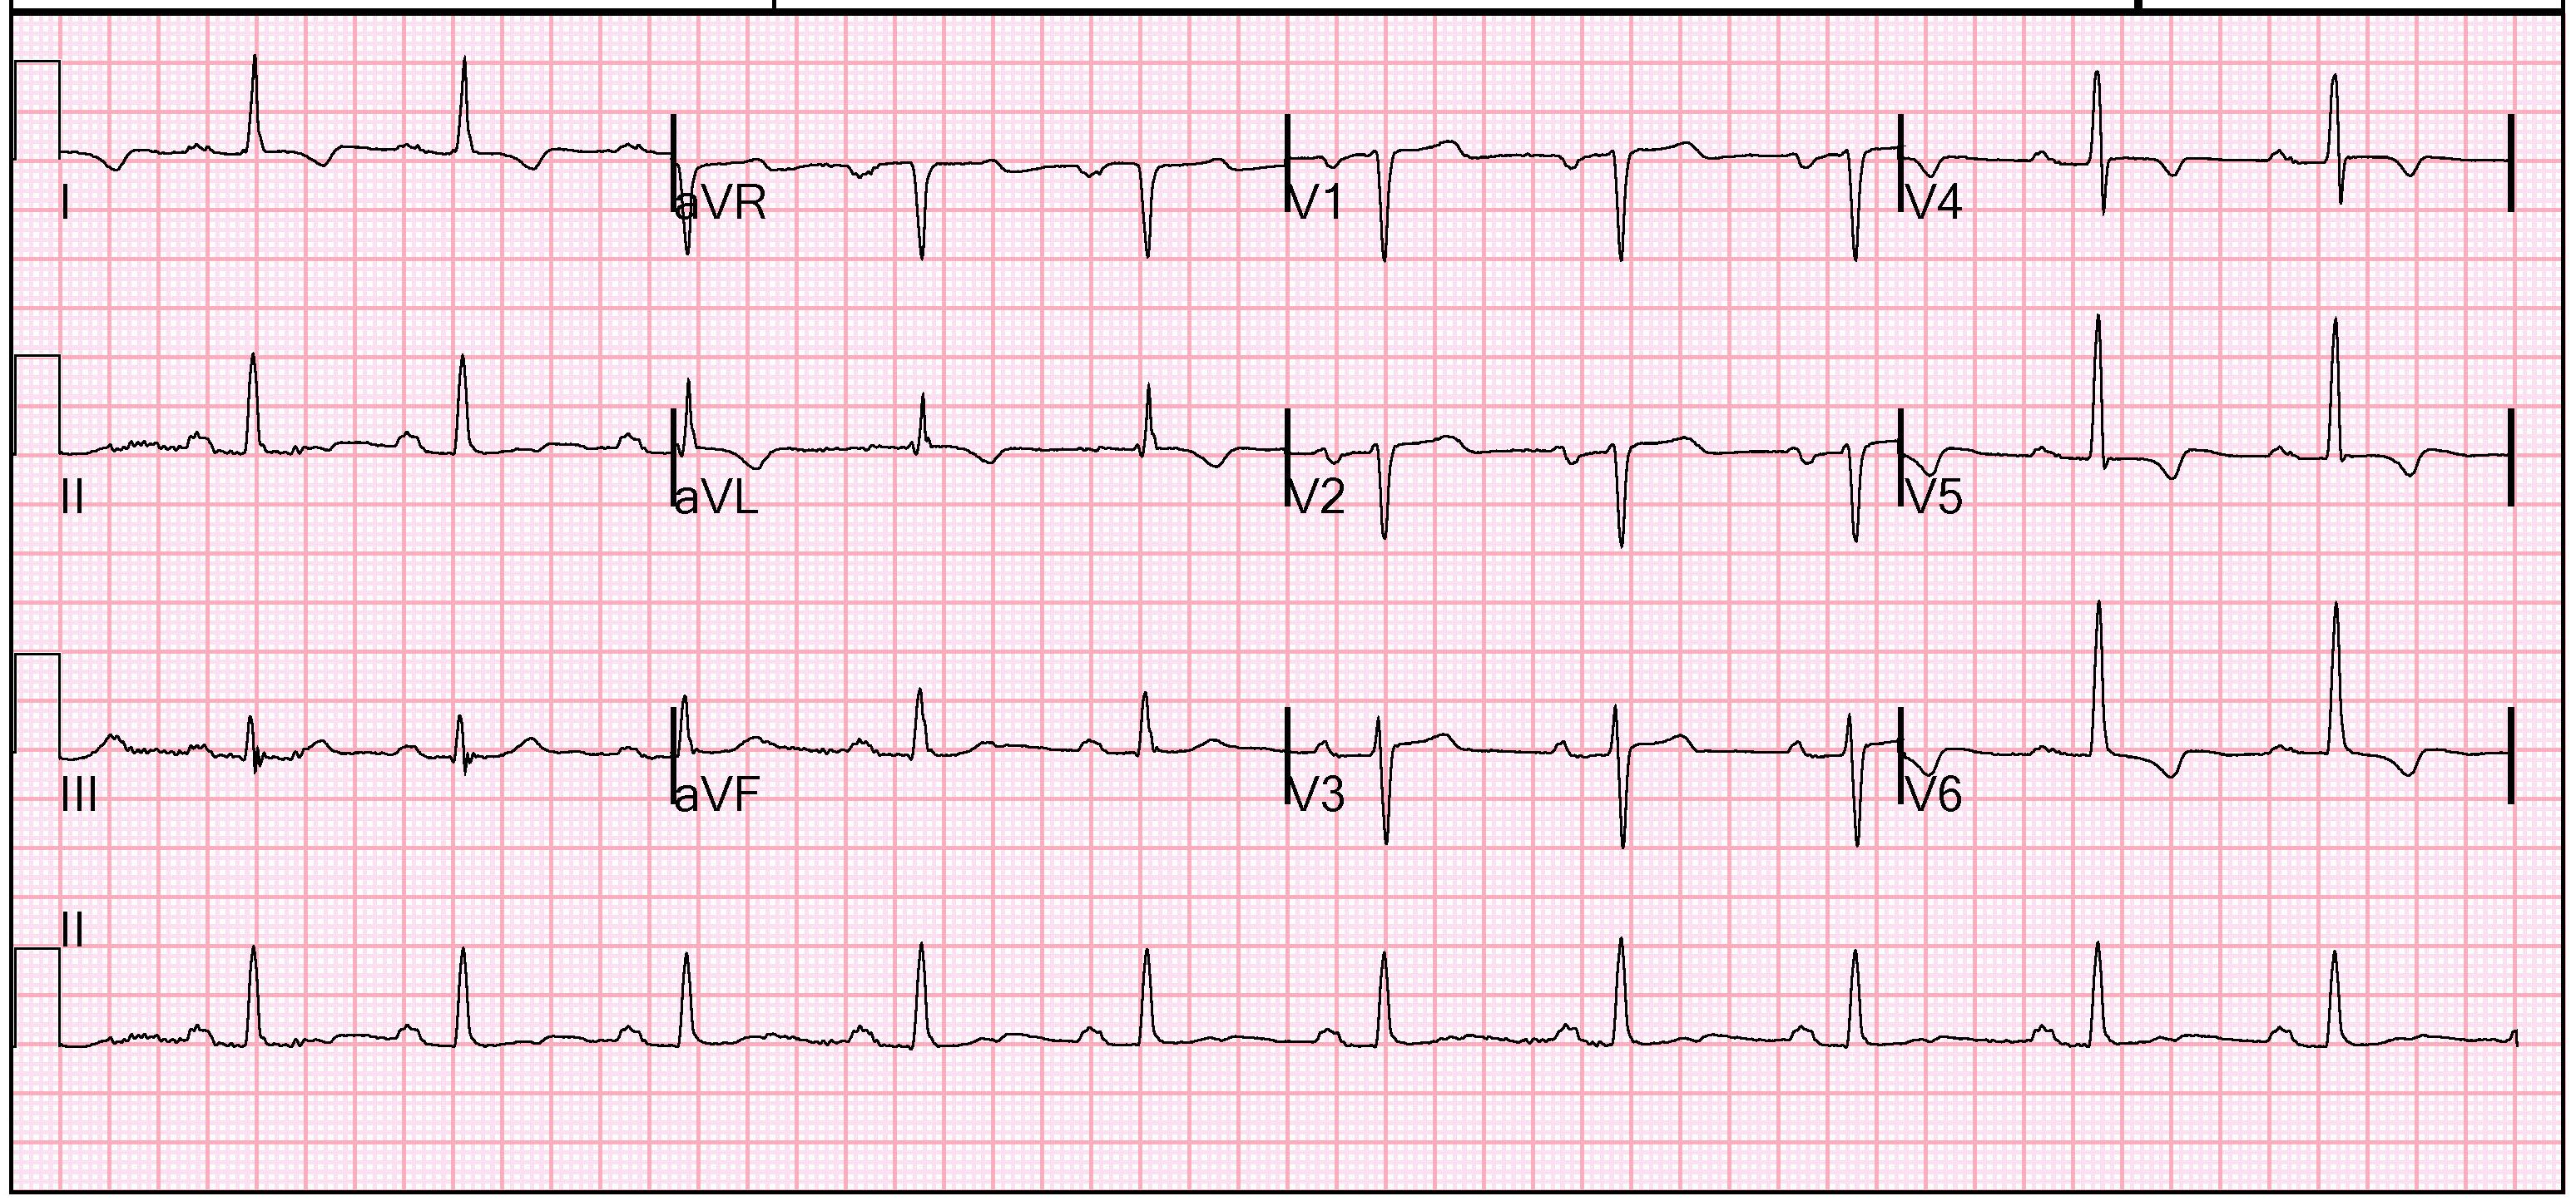 image result for images of normal 12 lead ecg rhythm on ecg strip [ 3096 x 1444 Pixel ]